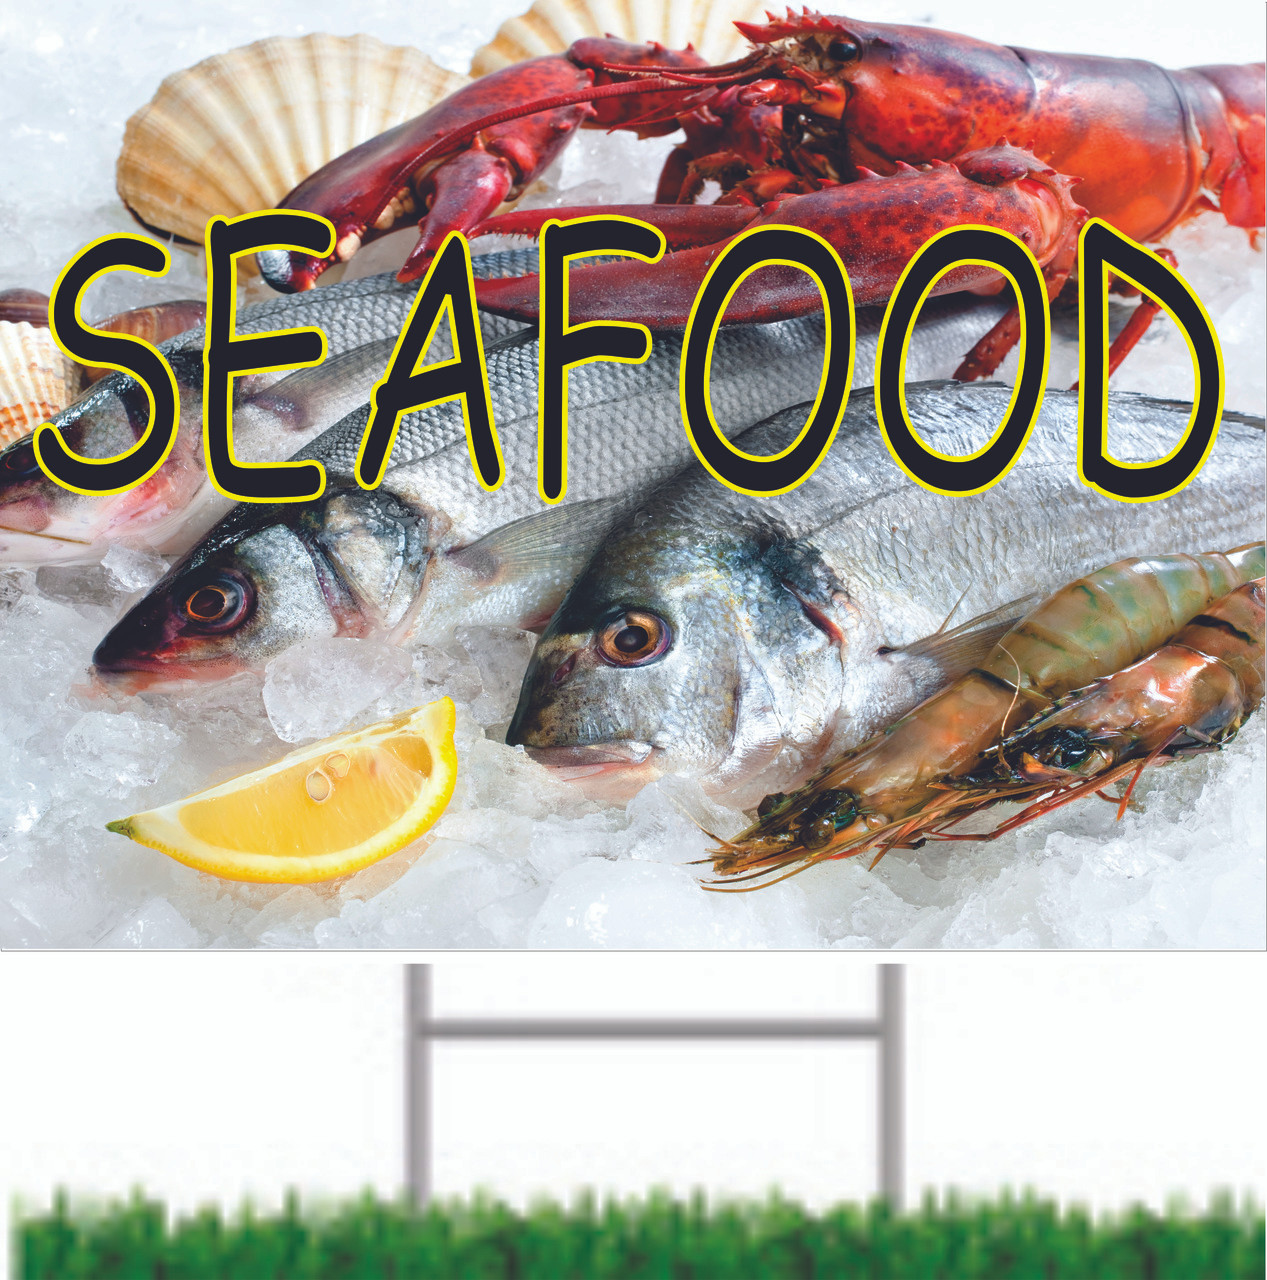 Seafood Yard Sign displaying assorted seafood draws attention to your market.